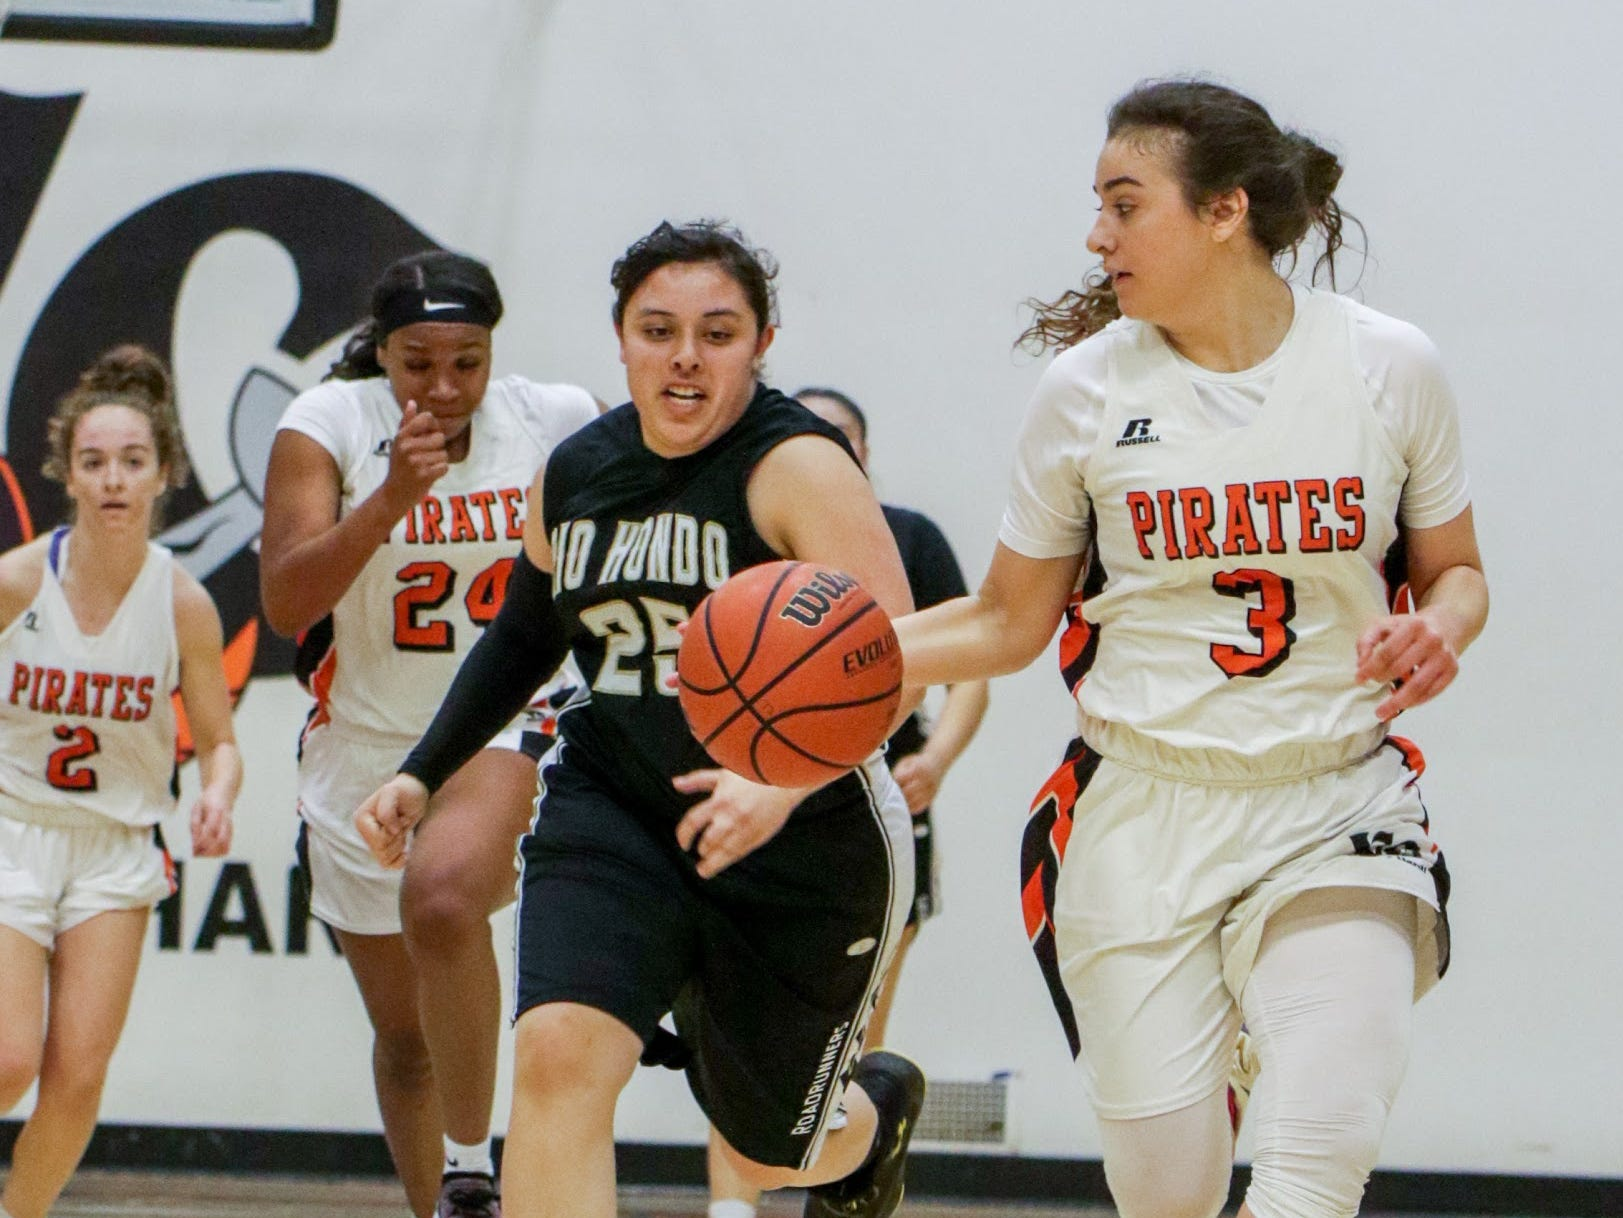 Ventura College freshman Cece Quintino looks for an open teammate on Friday night against Rio Hondo in the CCCAA SoCal regional semifinals at the VC Athletic Event Center. Ventura won, 60-49.